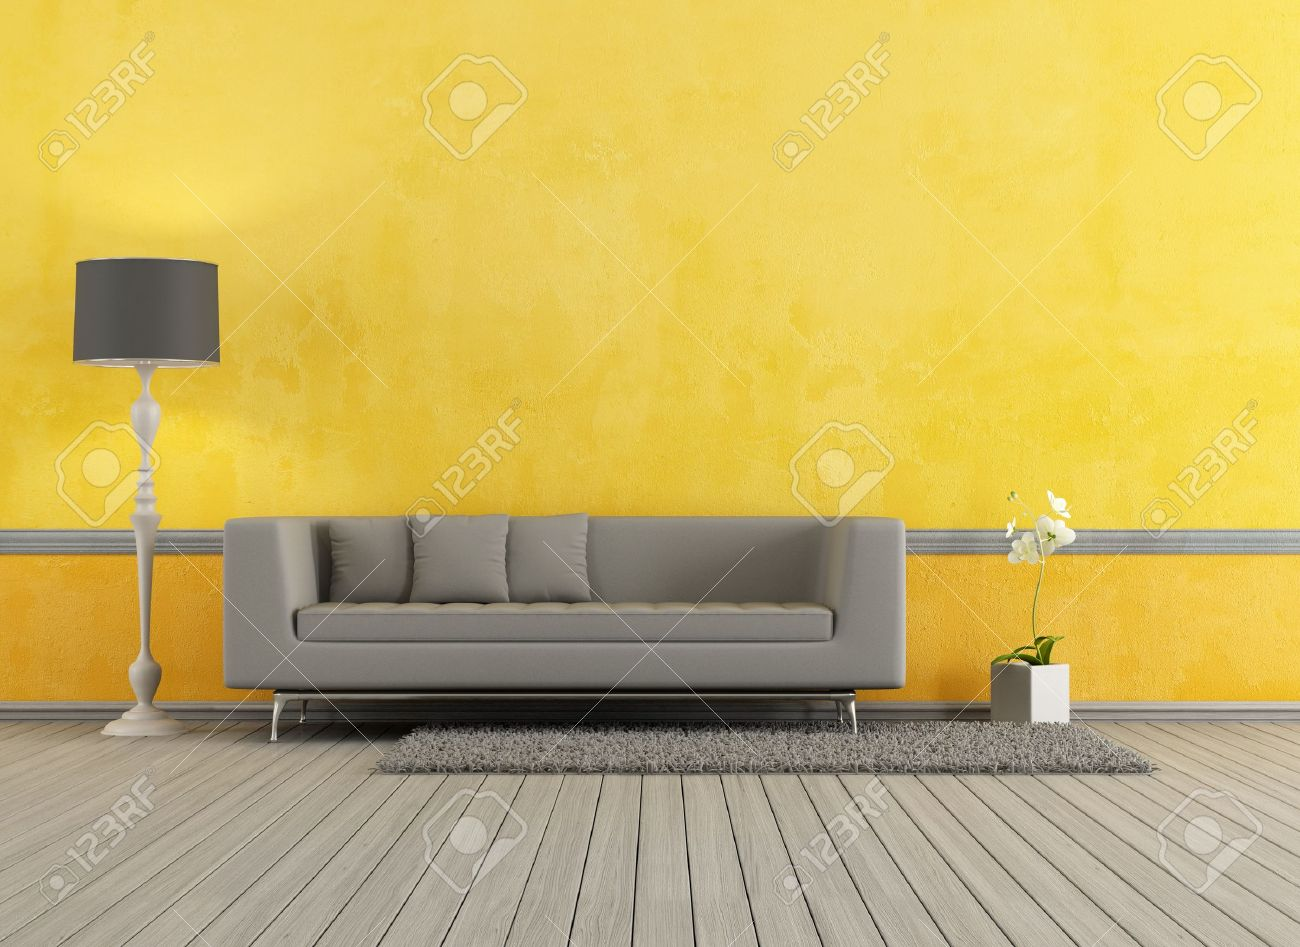 Gray modern sofa in a yellow living room rendering stock photo 19662174